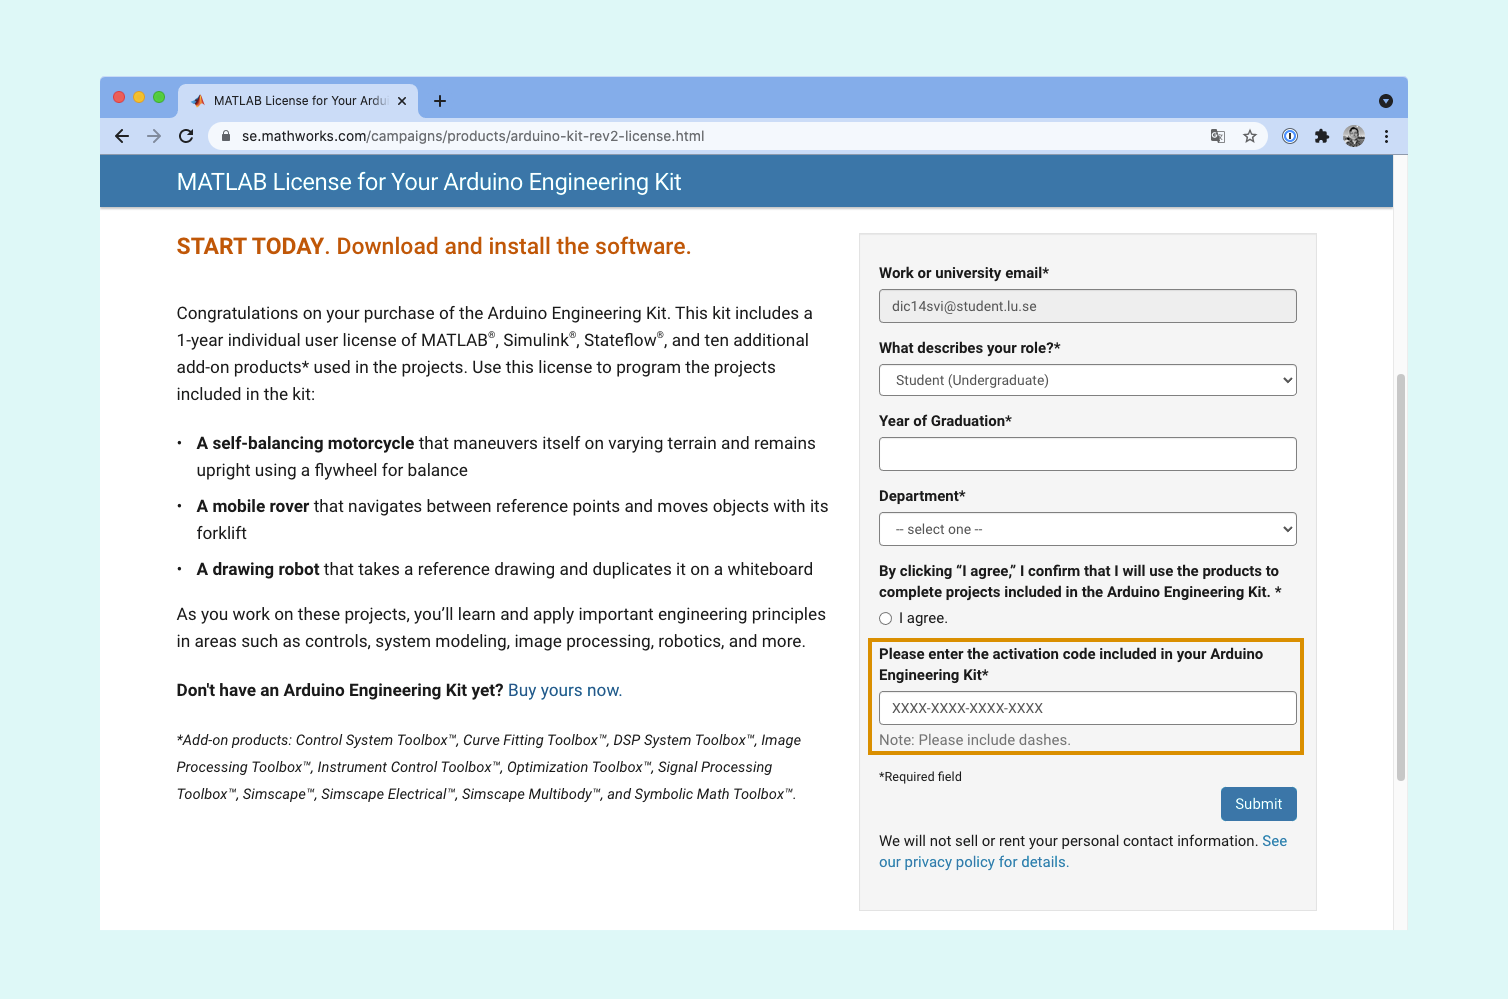 """The MathWorks Engineering Kit page. A field labeled """"Please enter the activation code included in your Arduino Engineering Kit"""" is highlighted."""